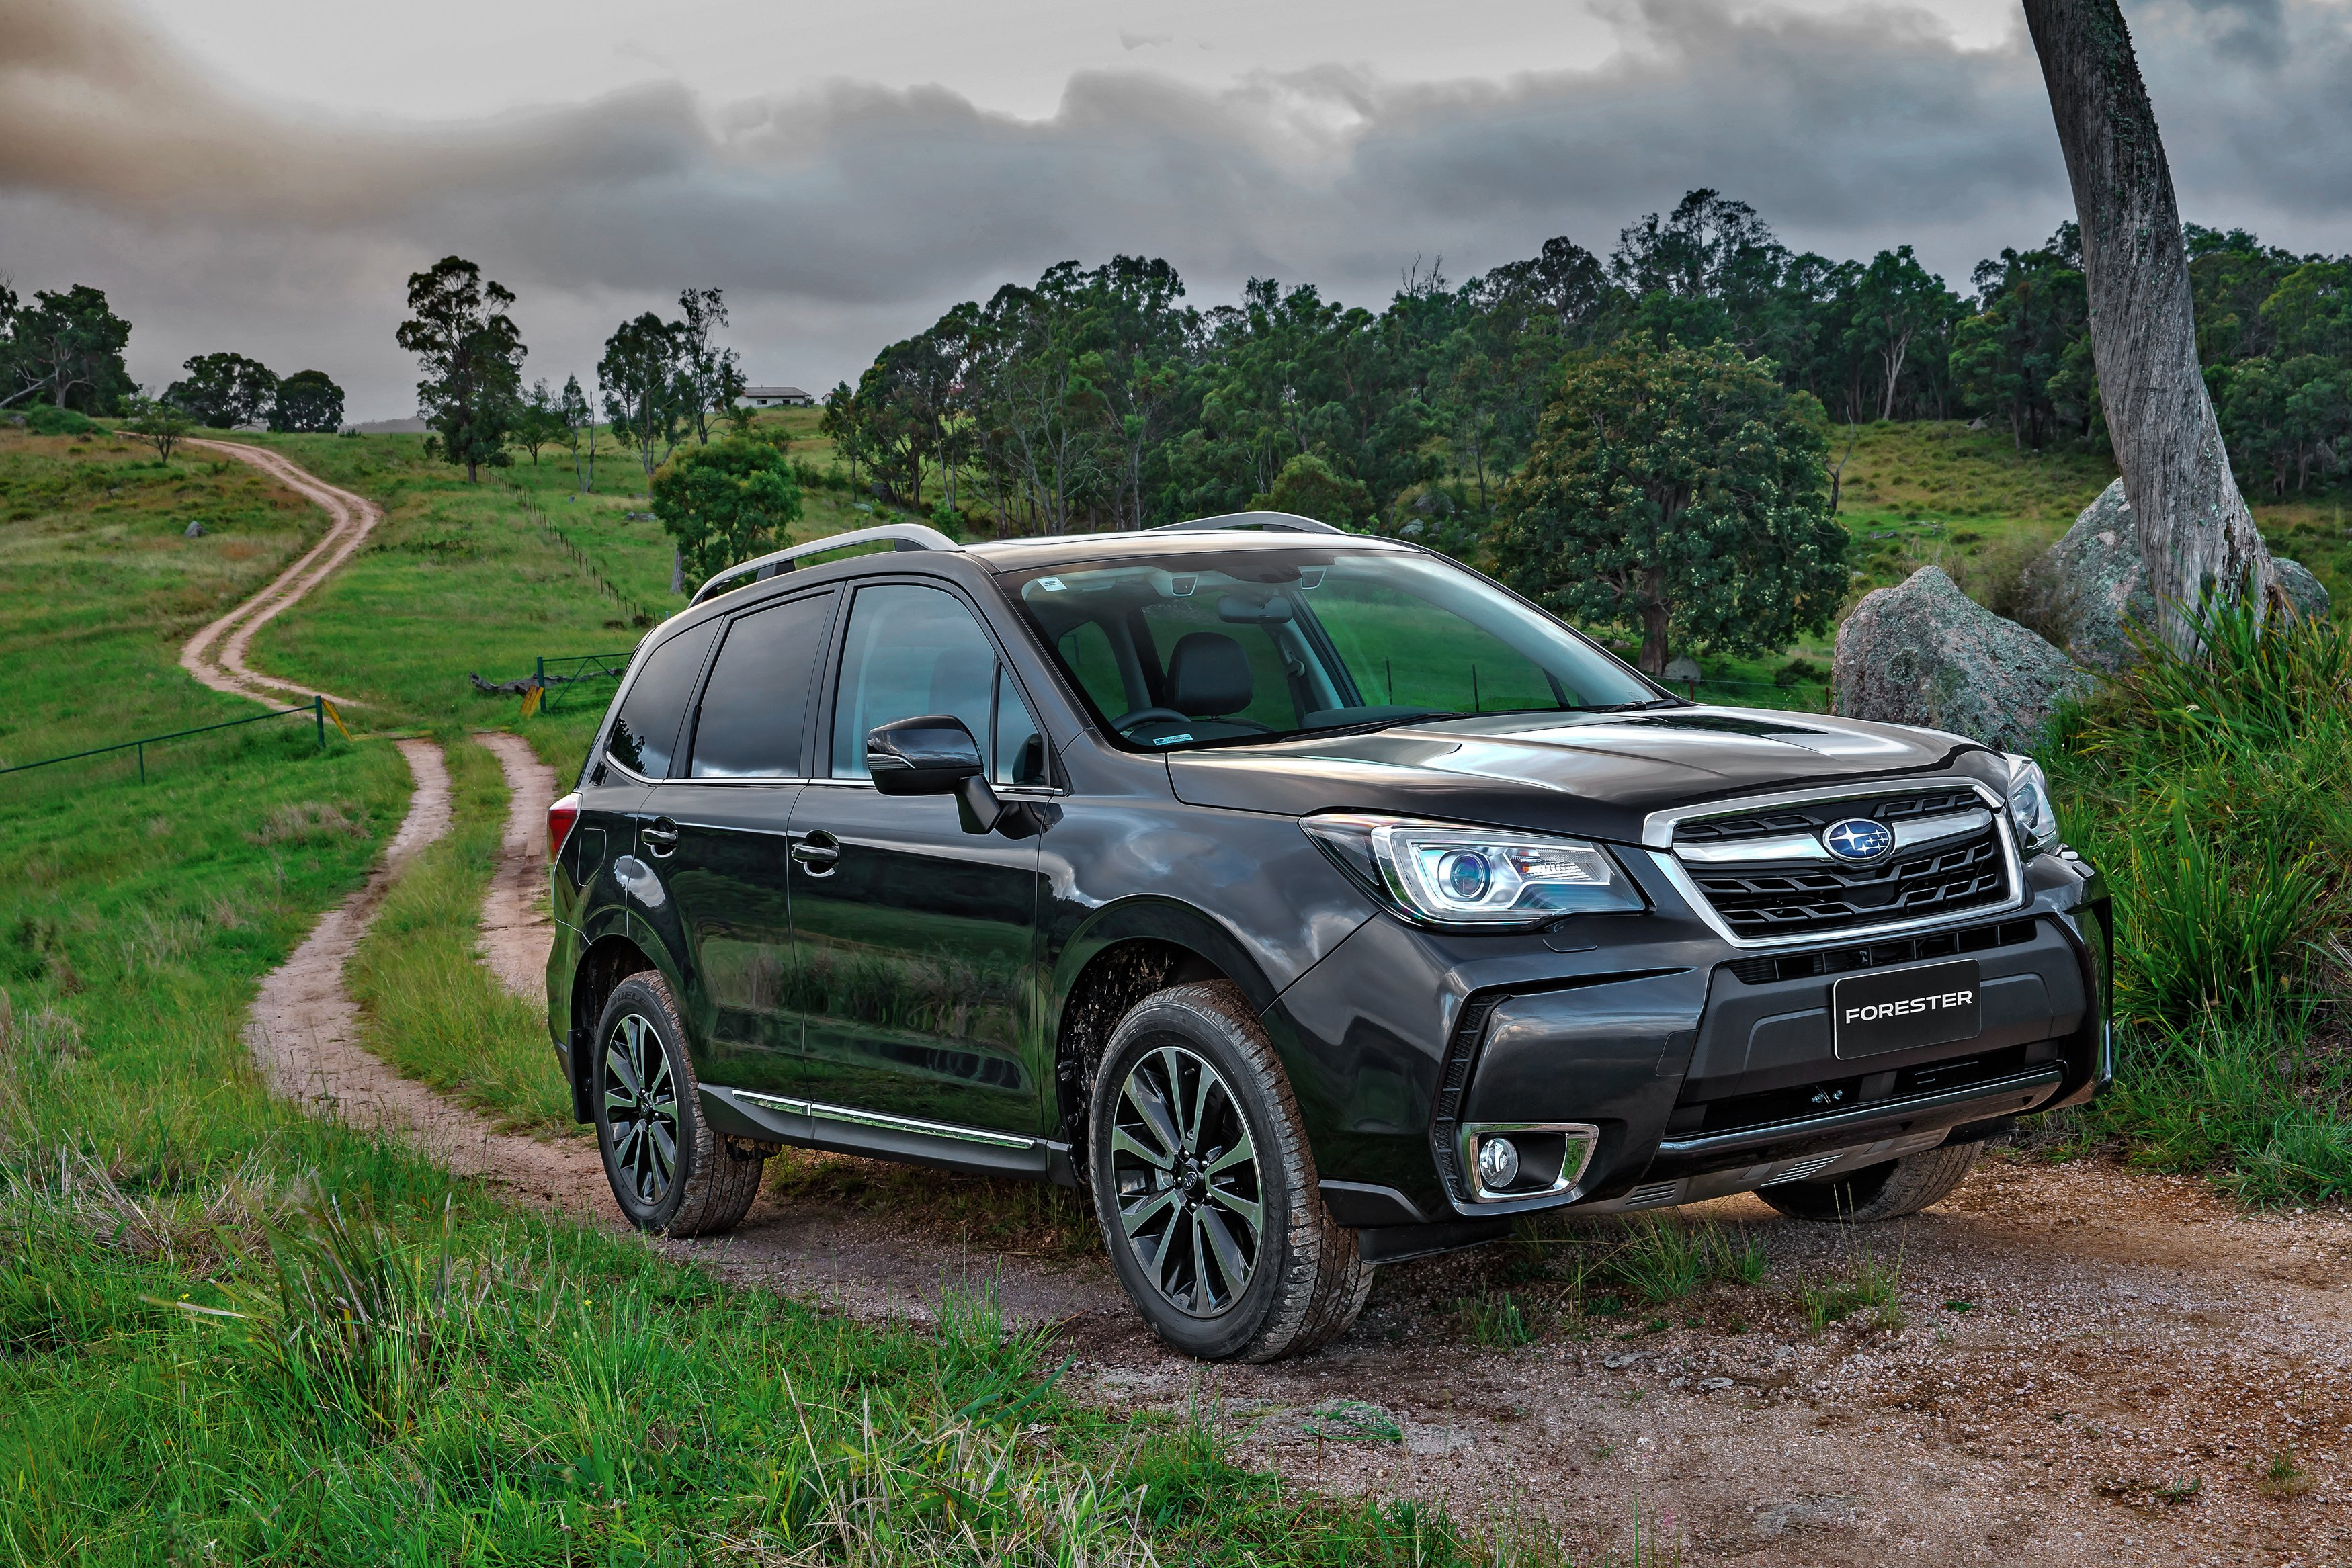 2016 Subaru Forester Review | CarAdvice